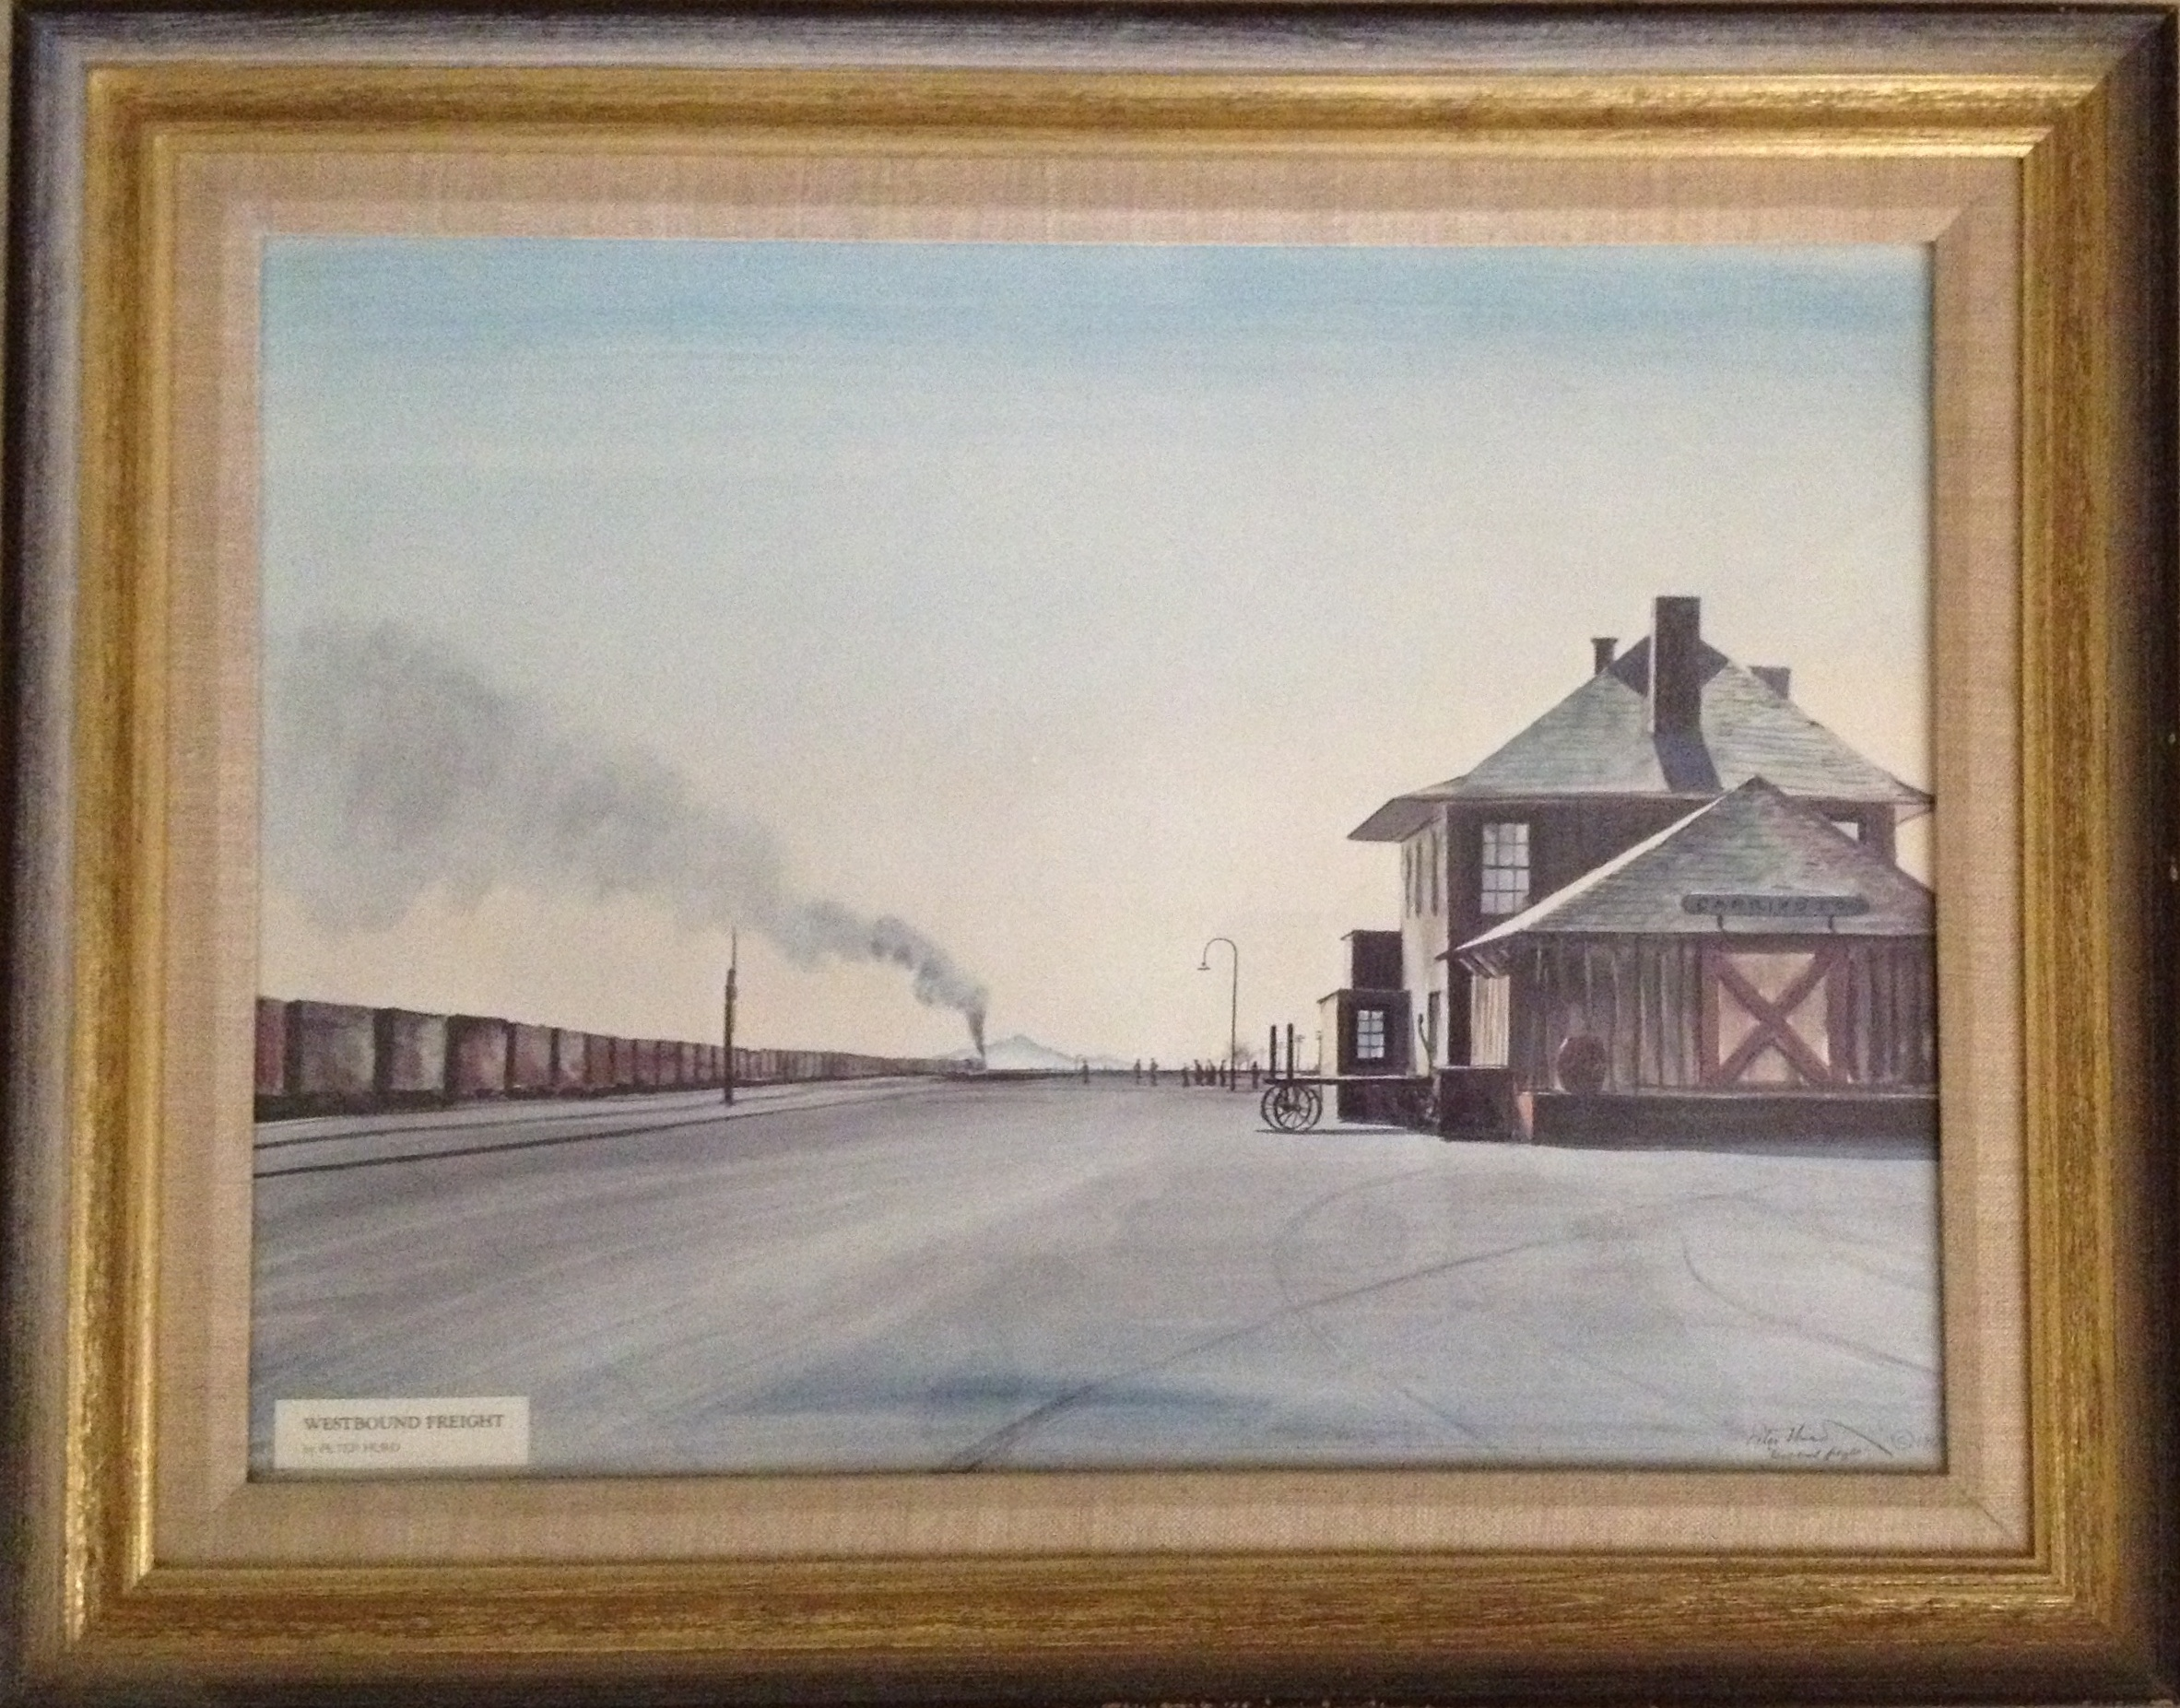 'Westbound Freight,' painting of railroad depot at Carrizozo, NM, by Peter Hurd